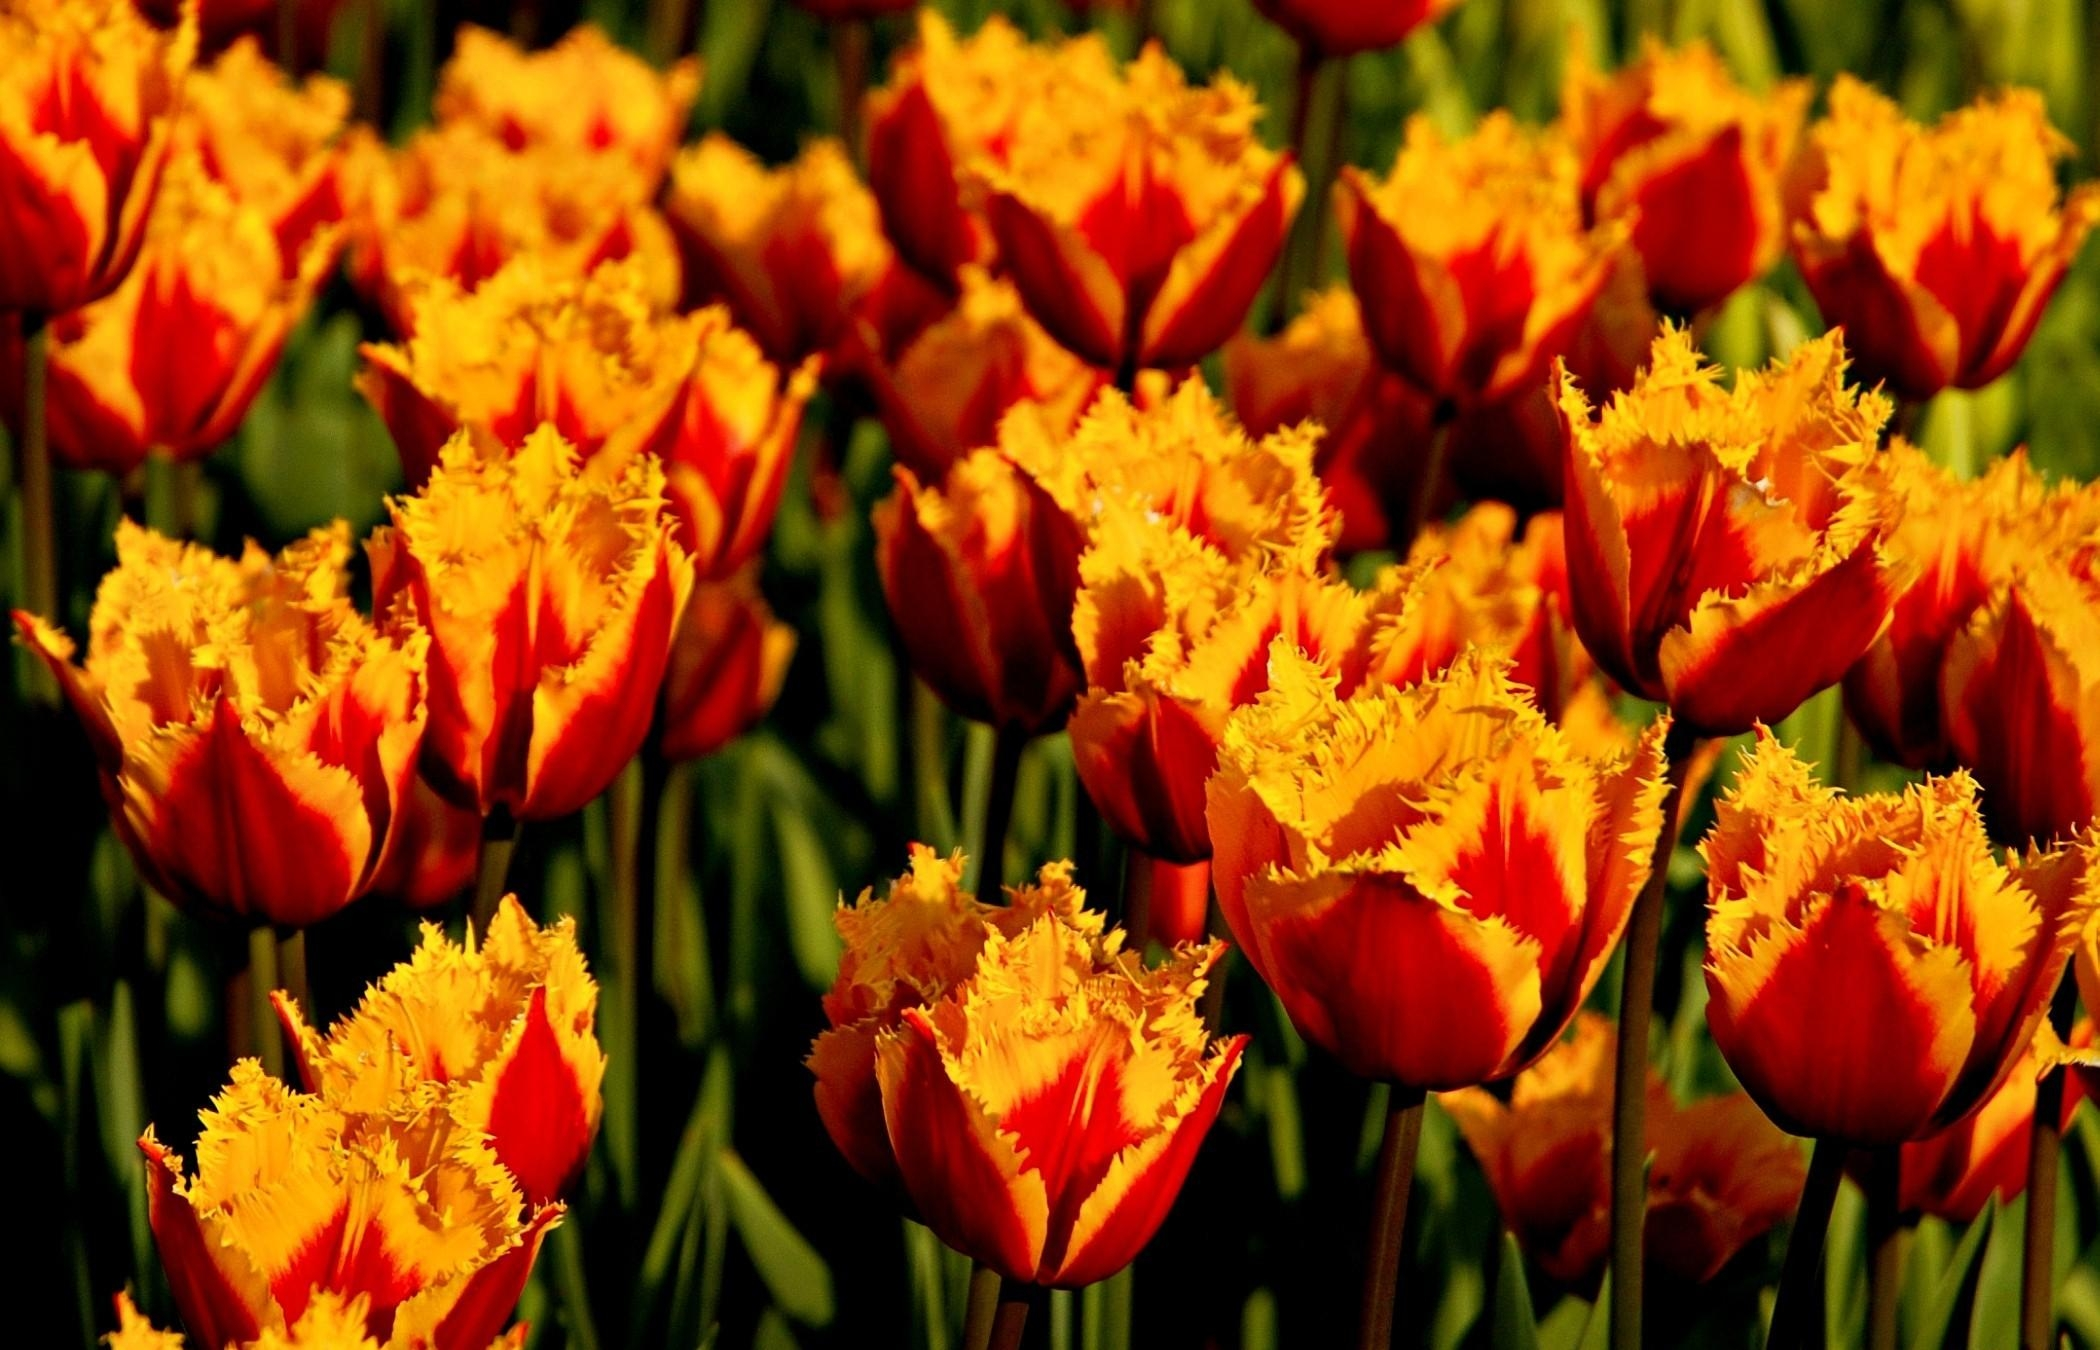 119915 Screensavers and Wallpapers Flower Bed for phone. Download Flowers, Tulips, Close-Up, Flower Bed, Flowerbed, Bicolor, Two-Colored, Terry pictures for free